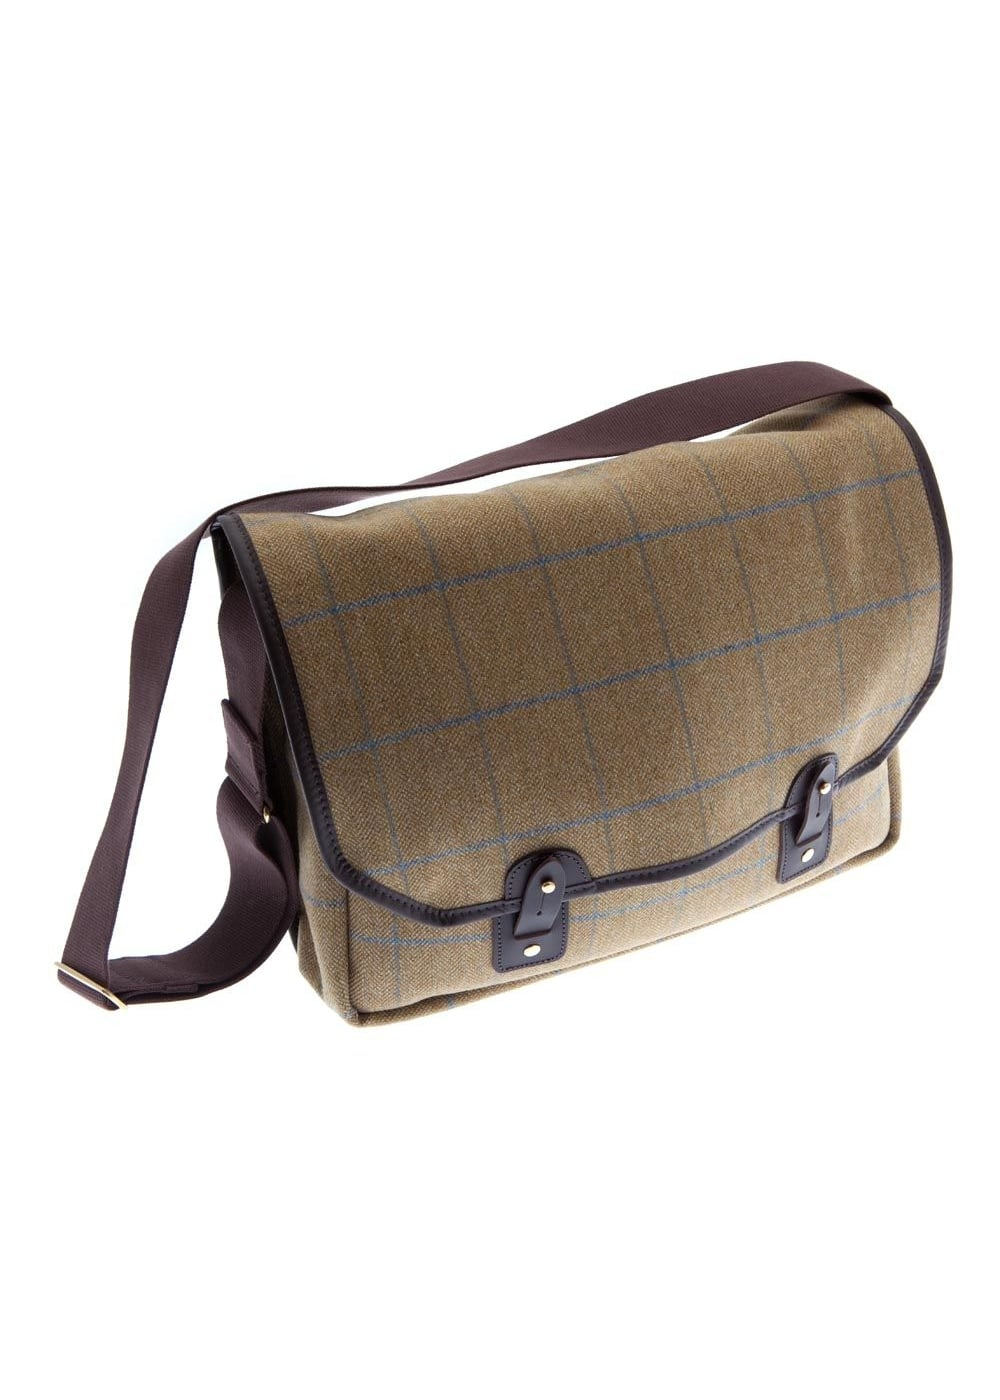 Bladen City Fell Bag Large Image